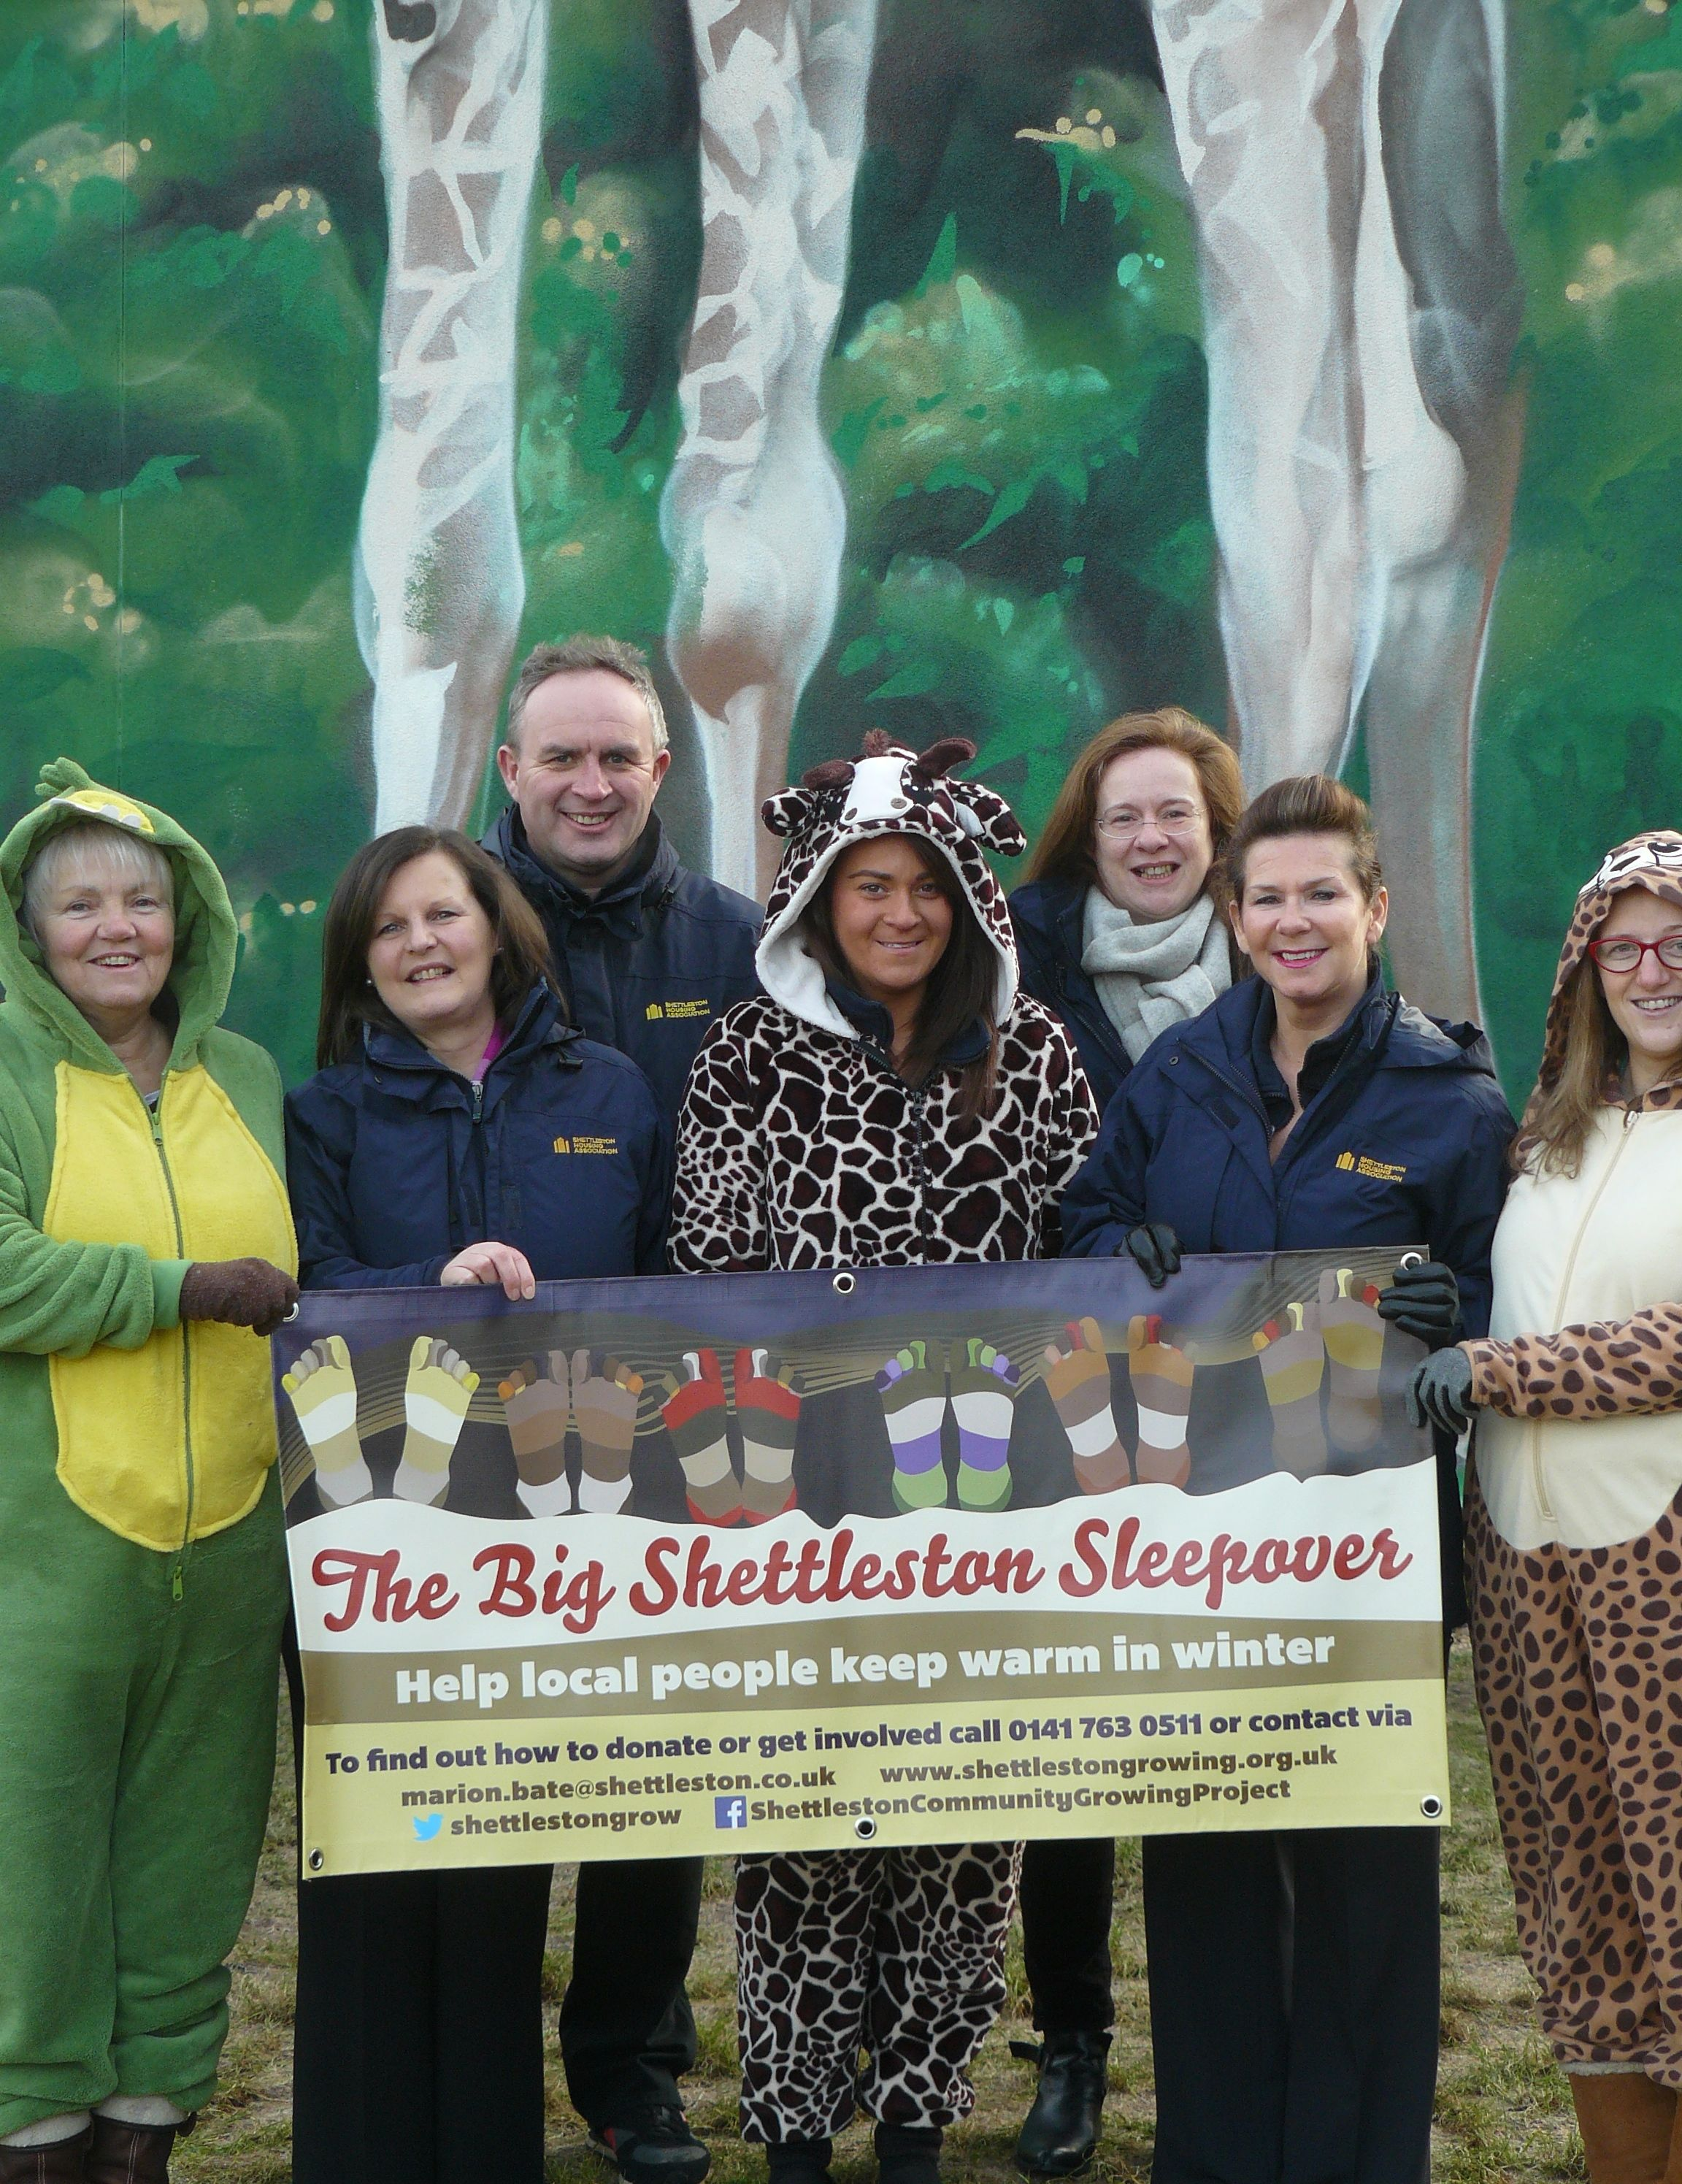 SHA staff holding banner promoting the Big Shettleston Sleepover